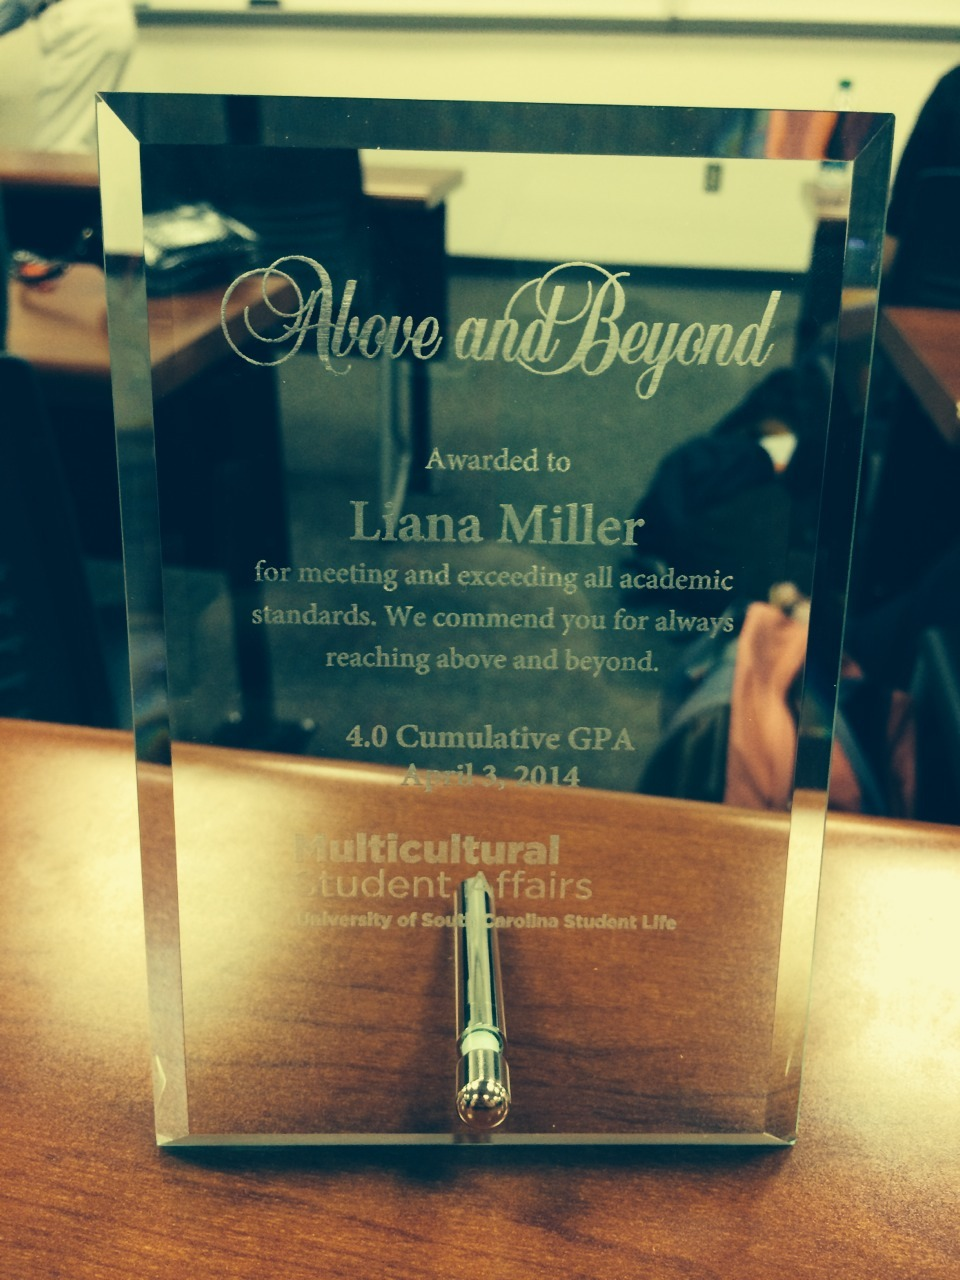 I am one of 22 students awarded by the University for my cumulative 4.0 GPA (and I got this fancy plaque to boot!)